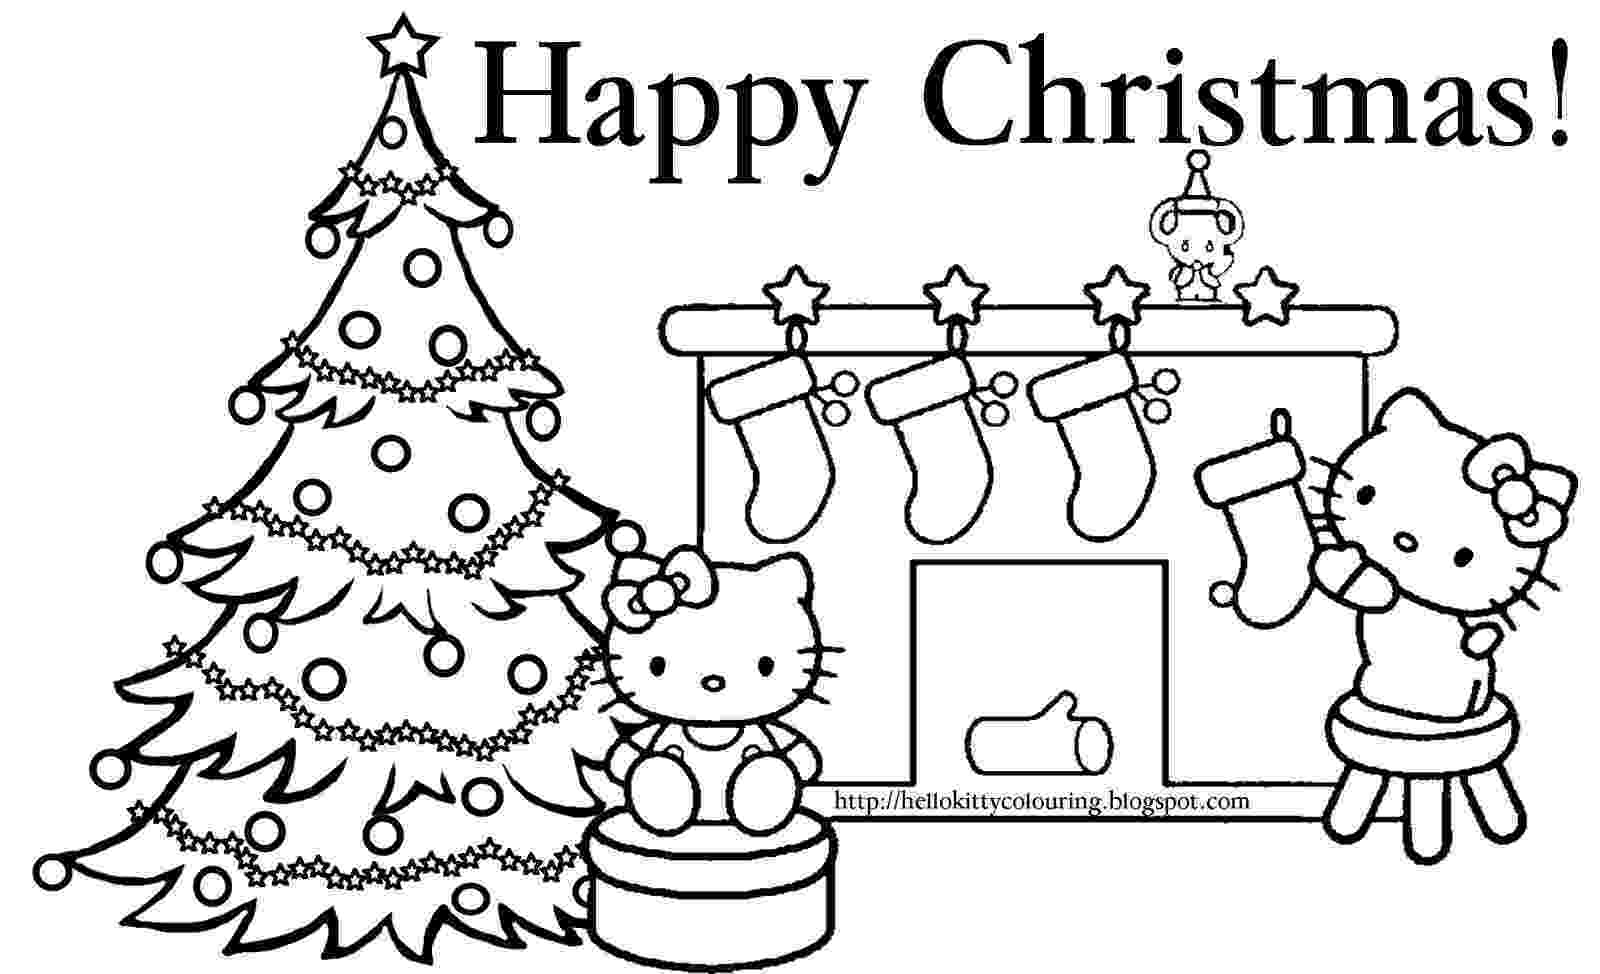 hello kitty christmas coloring pages free print hello kitty christmas coloring pages getcoloringpagescom pages print kitty christmas coloring free hello